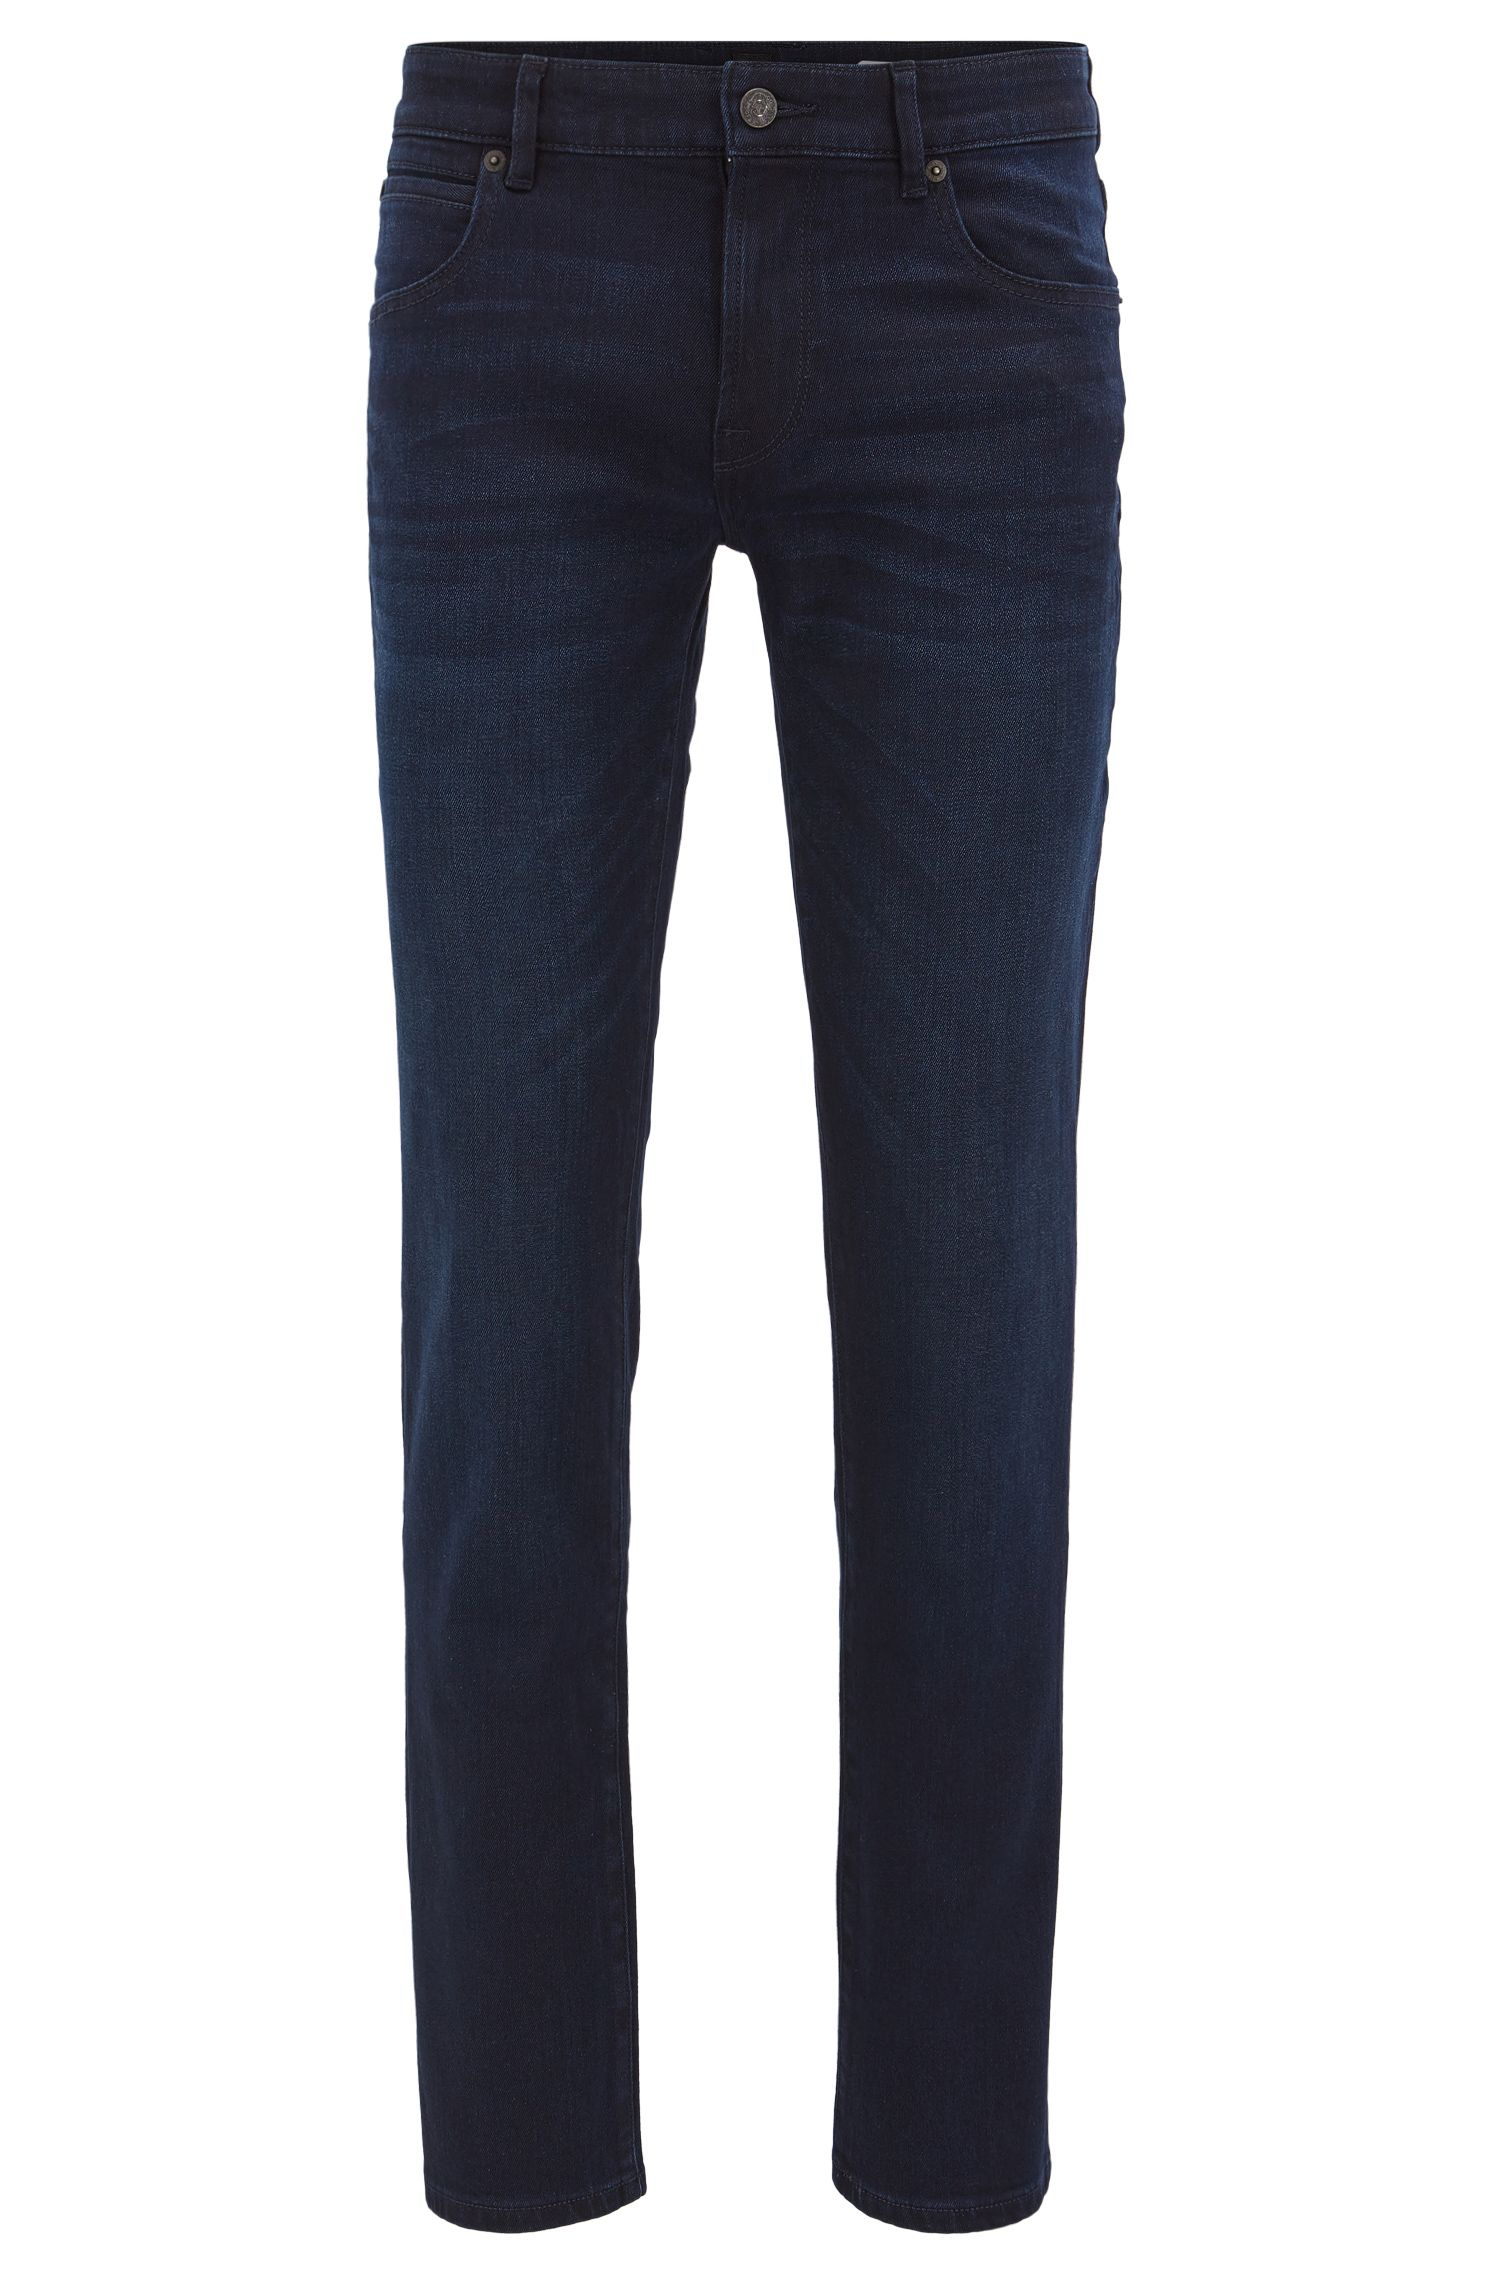 Jean Regular Fit en confortable denim stretch bleu-noir délavé